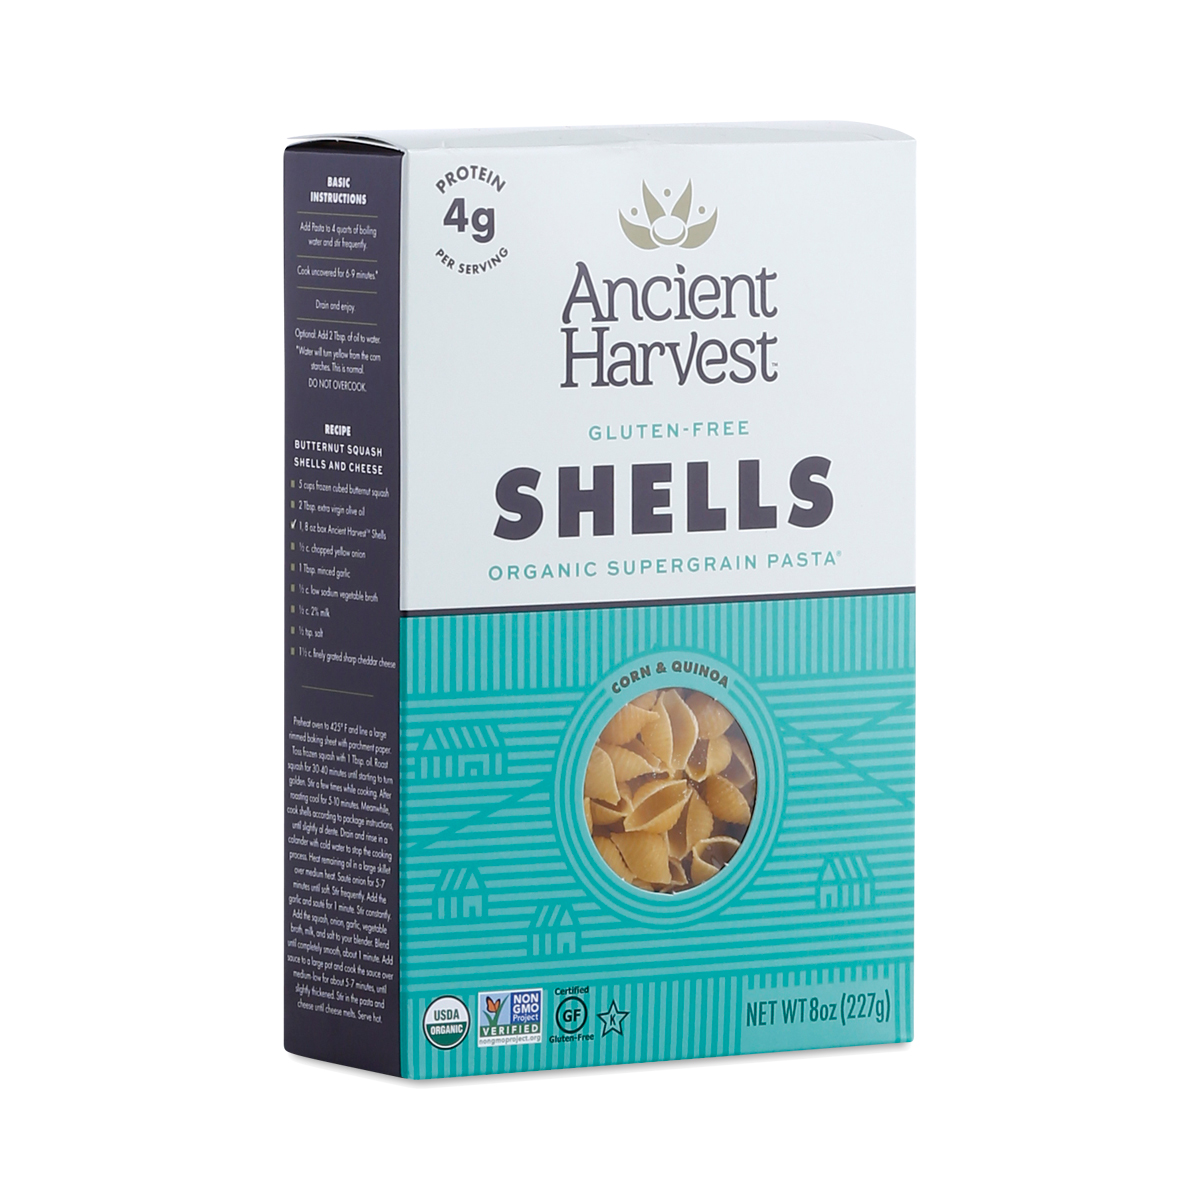 ANCIENT HARVEST SHELLS.jpg